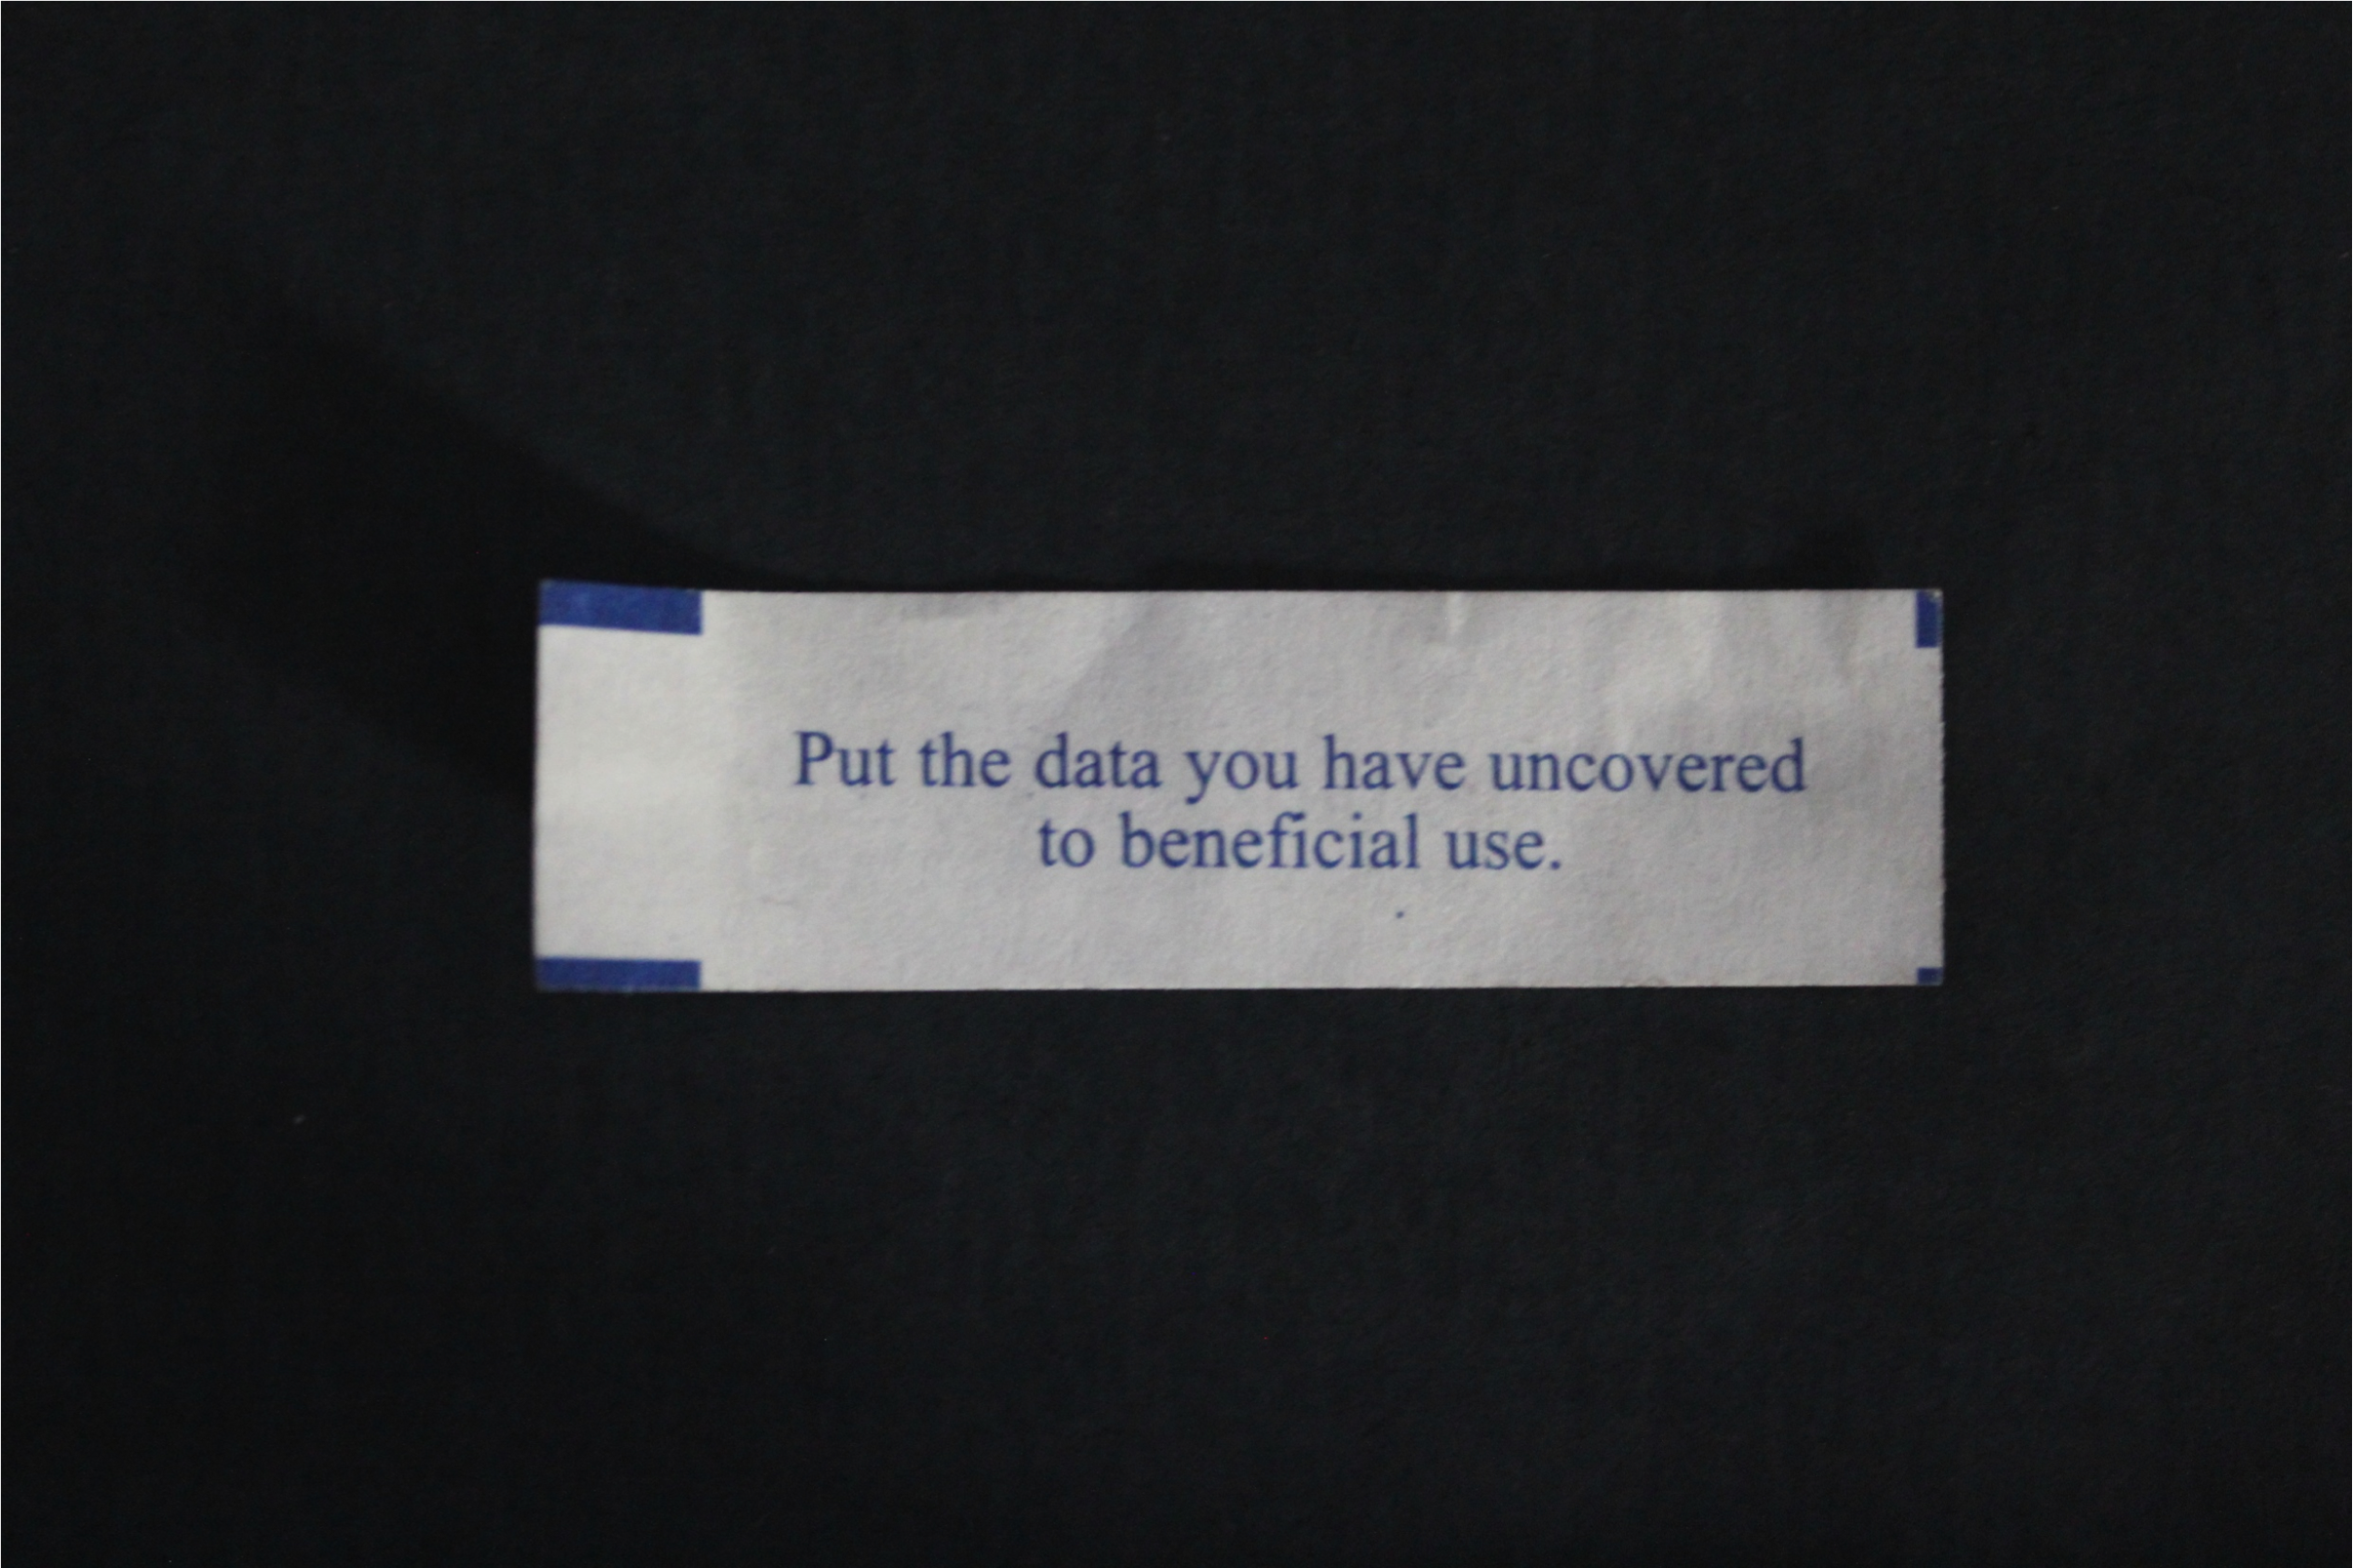 Data_fortuneCookie.png